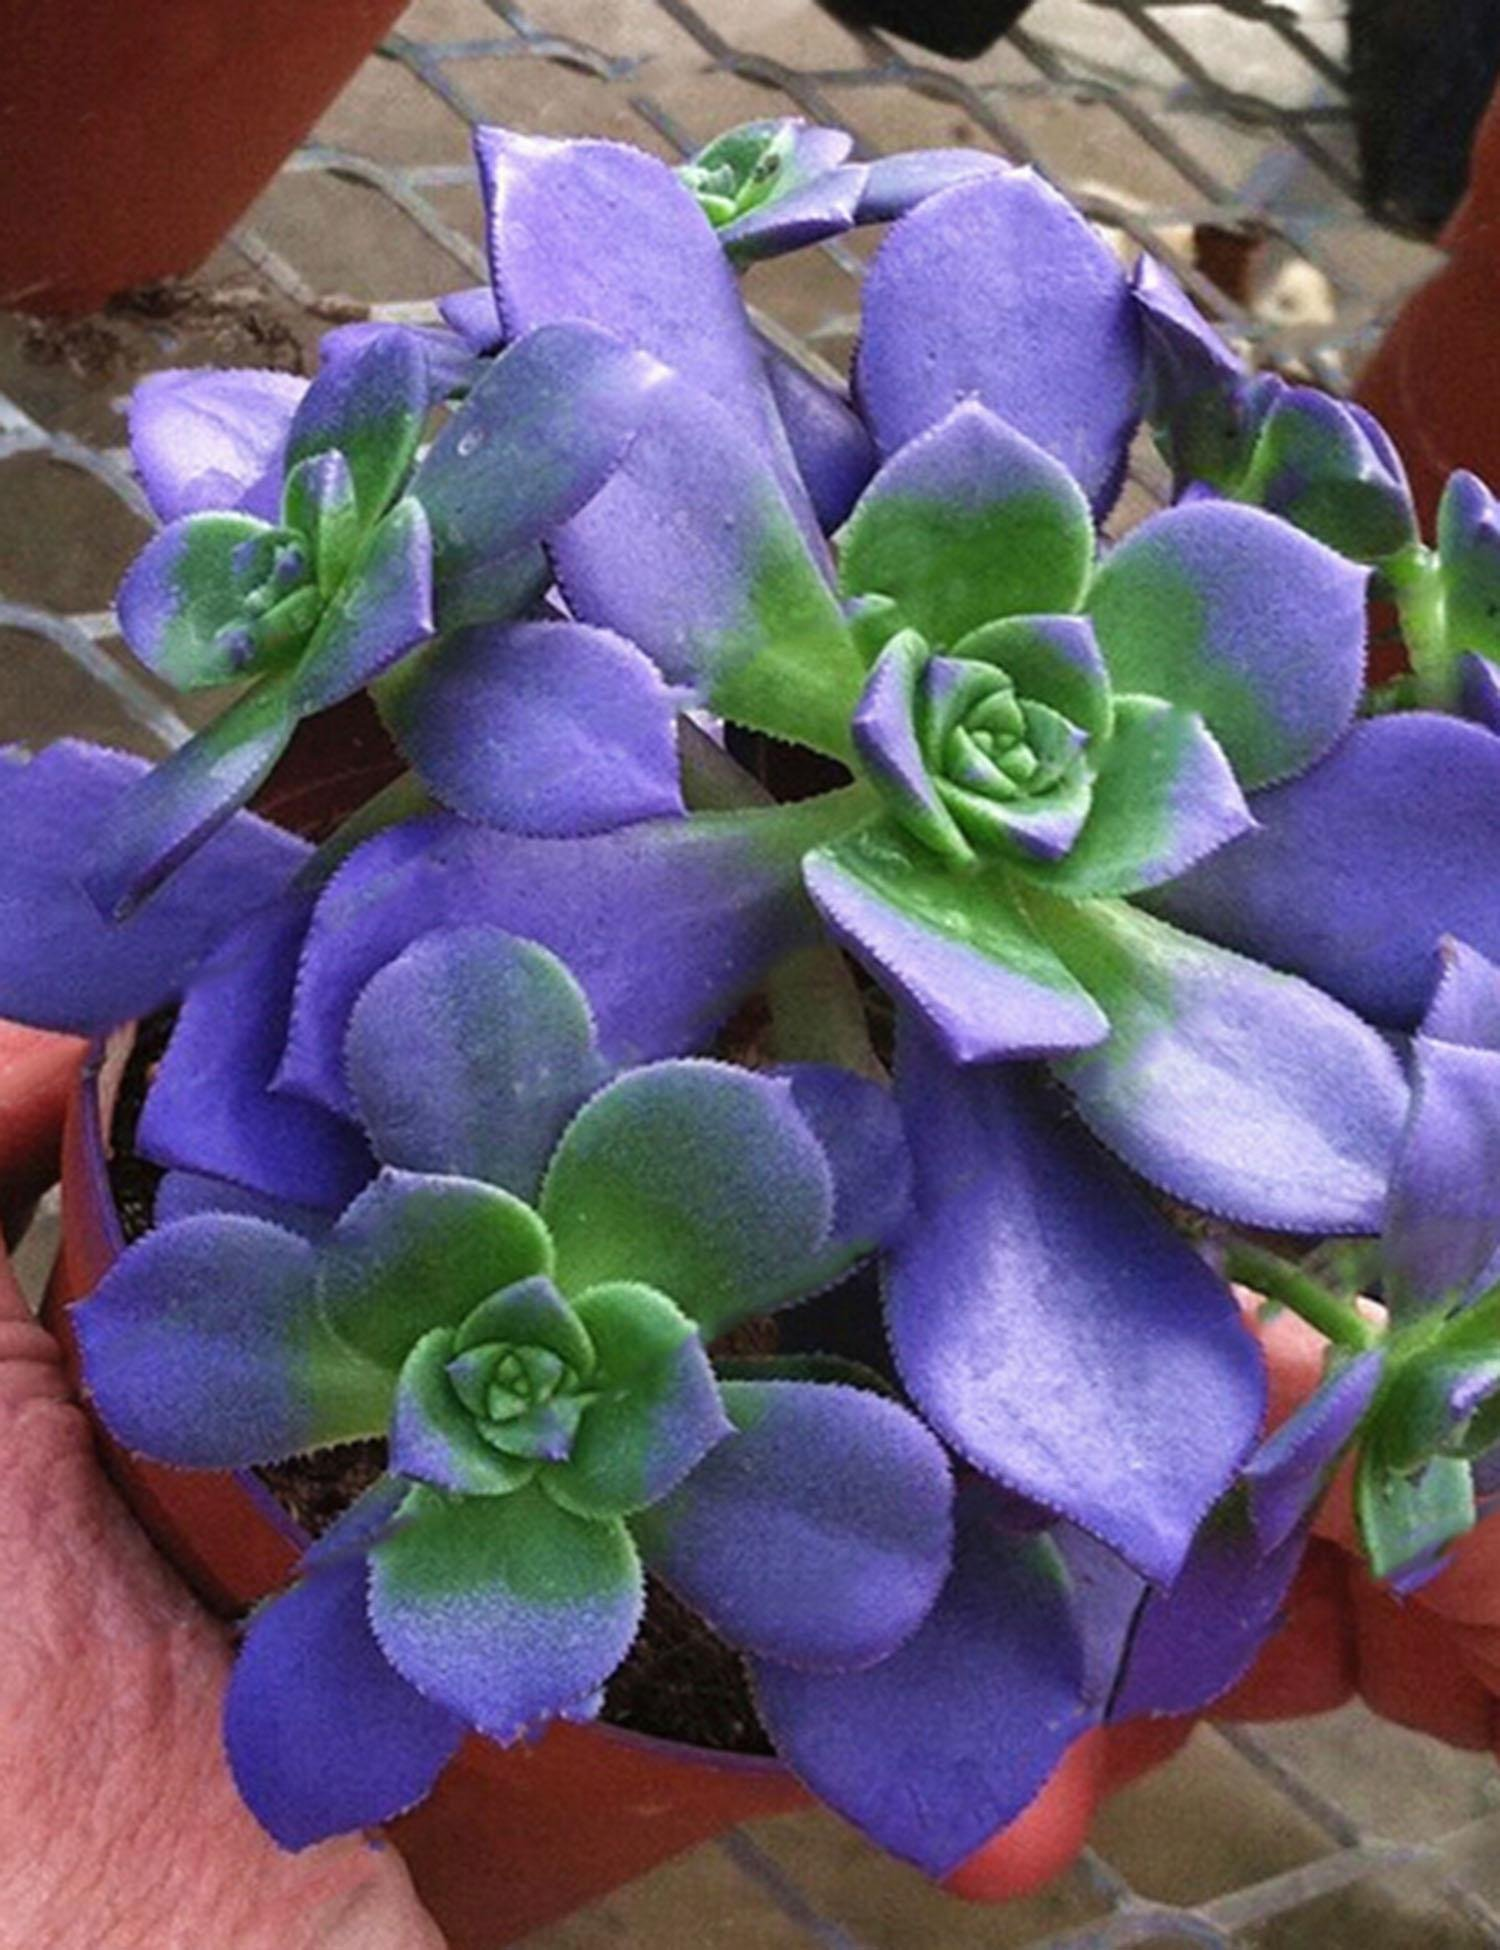 Youcoco New Nice Adorable Flower Fragrant Blooms Succulents Jeweled Flower Seeds